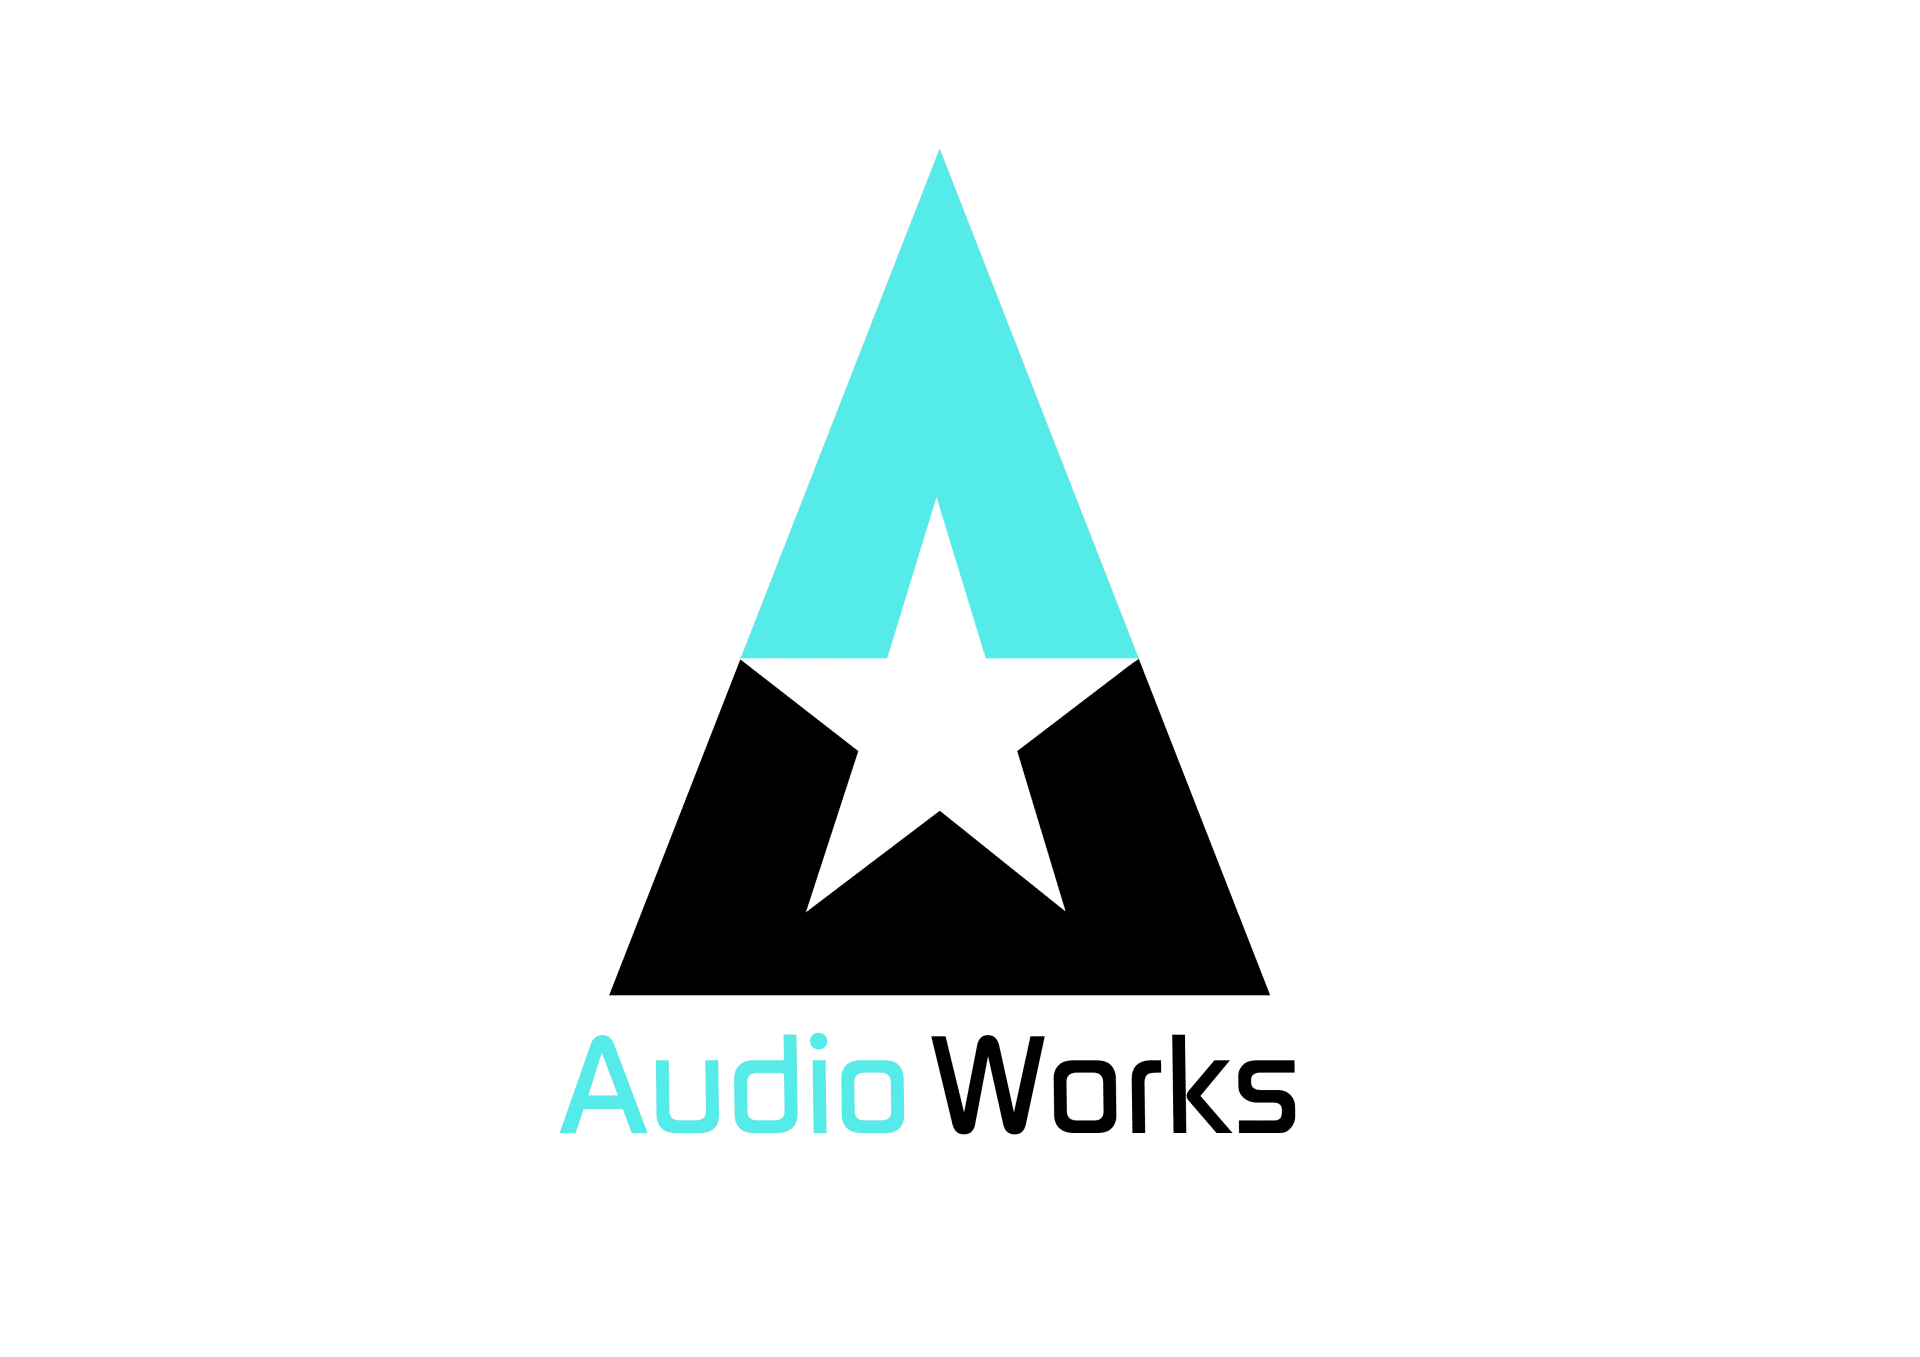 Audio Works